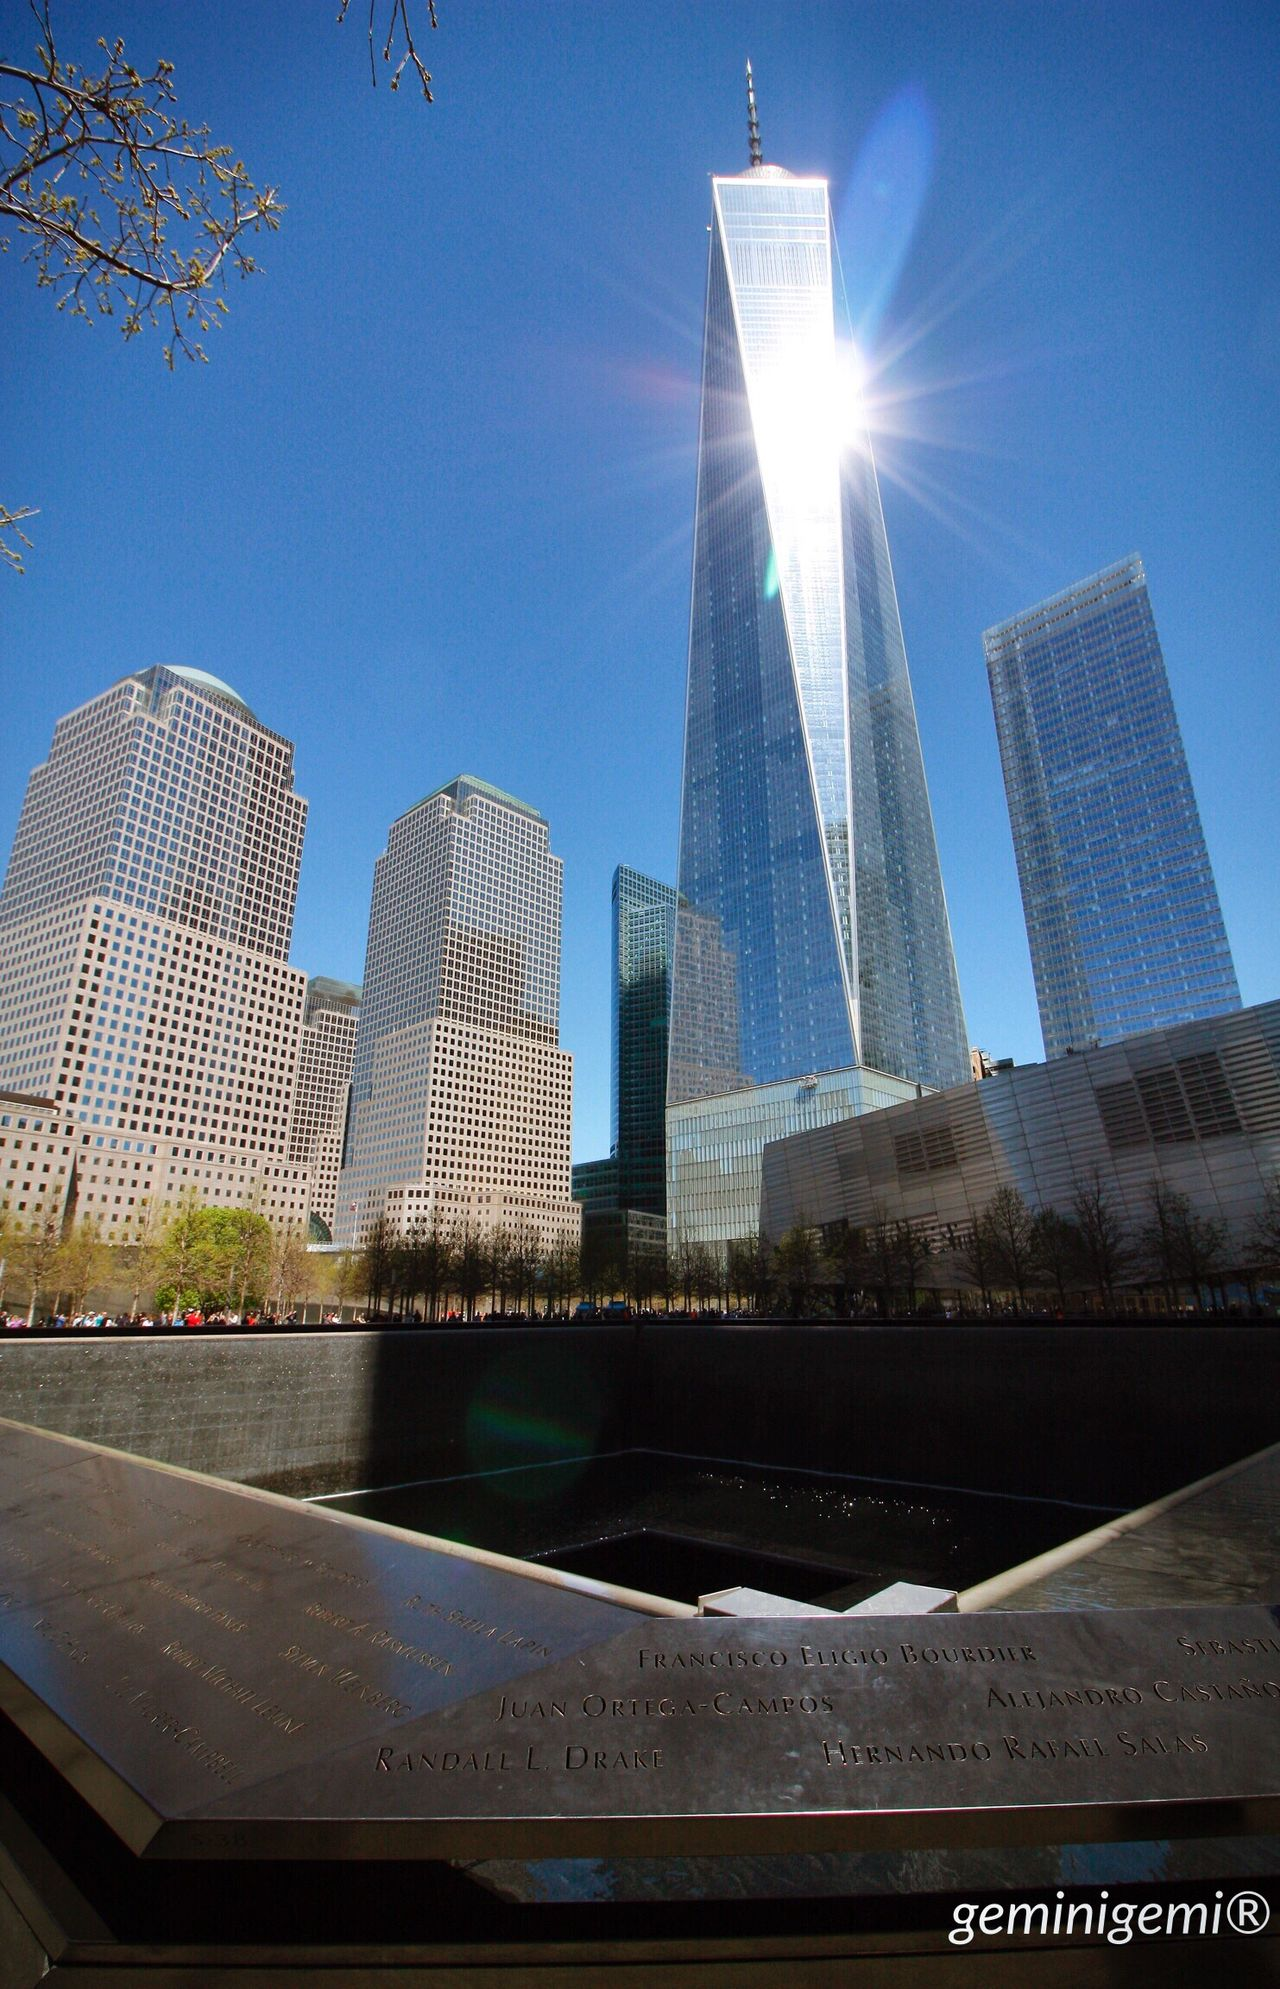 Oneworldtradecenter America Newyork Newyorkcity Mydream Dreamcametrue 2016 April Sunshine Shine Building Memorial 9/11 🇺🇸🏙